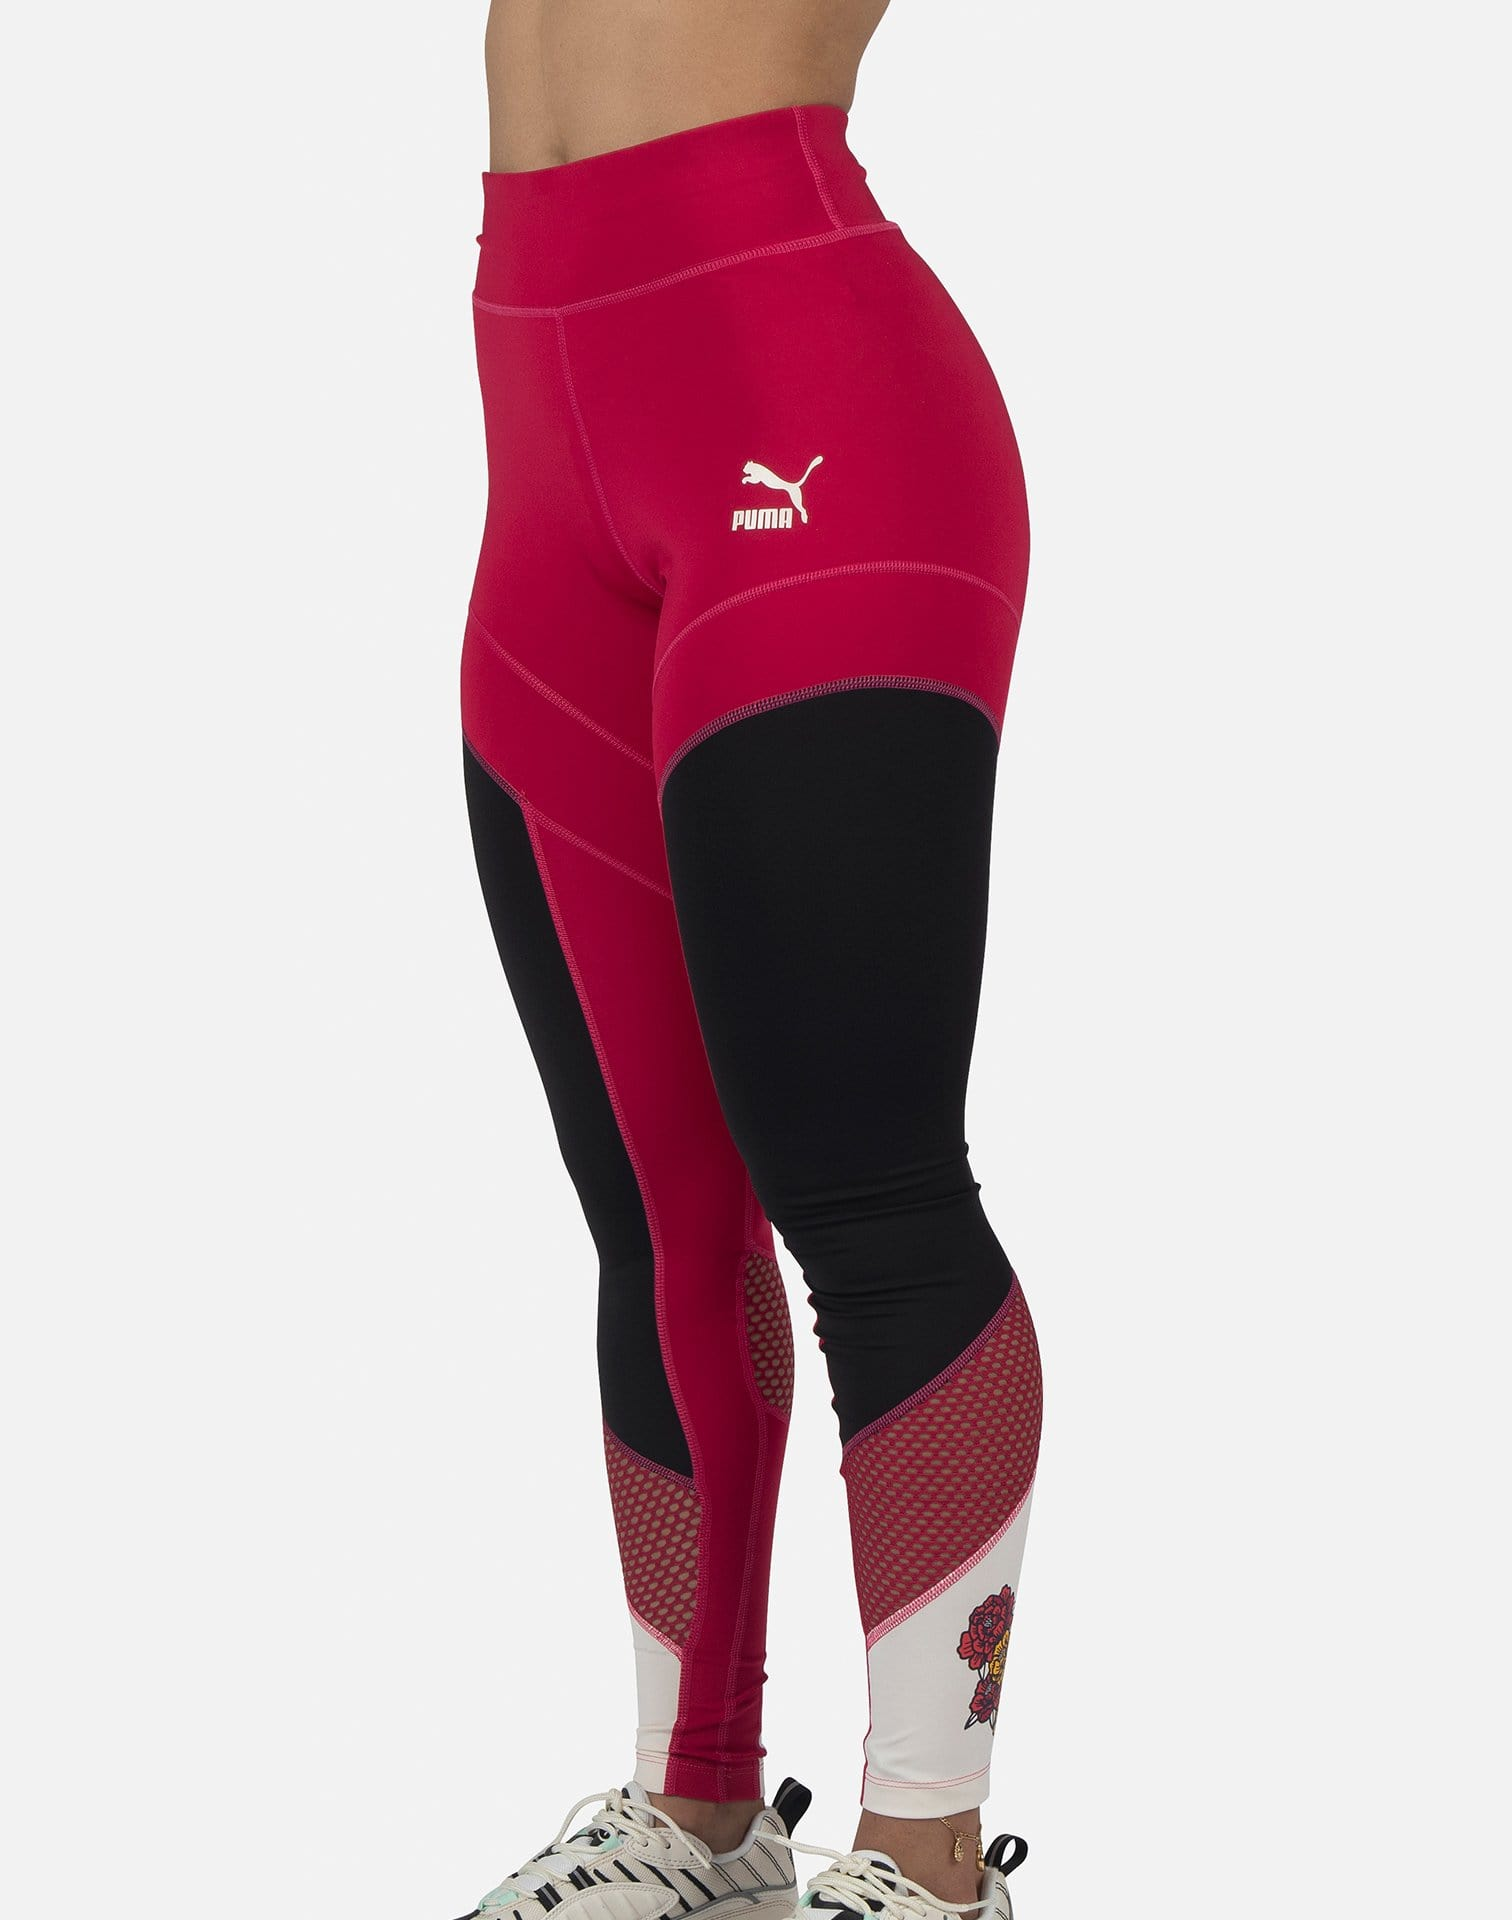 PUMA Women's Flourish XTG Leggings